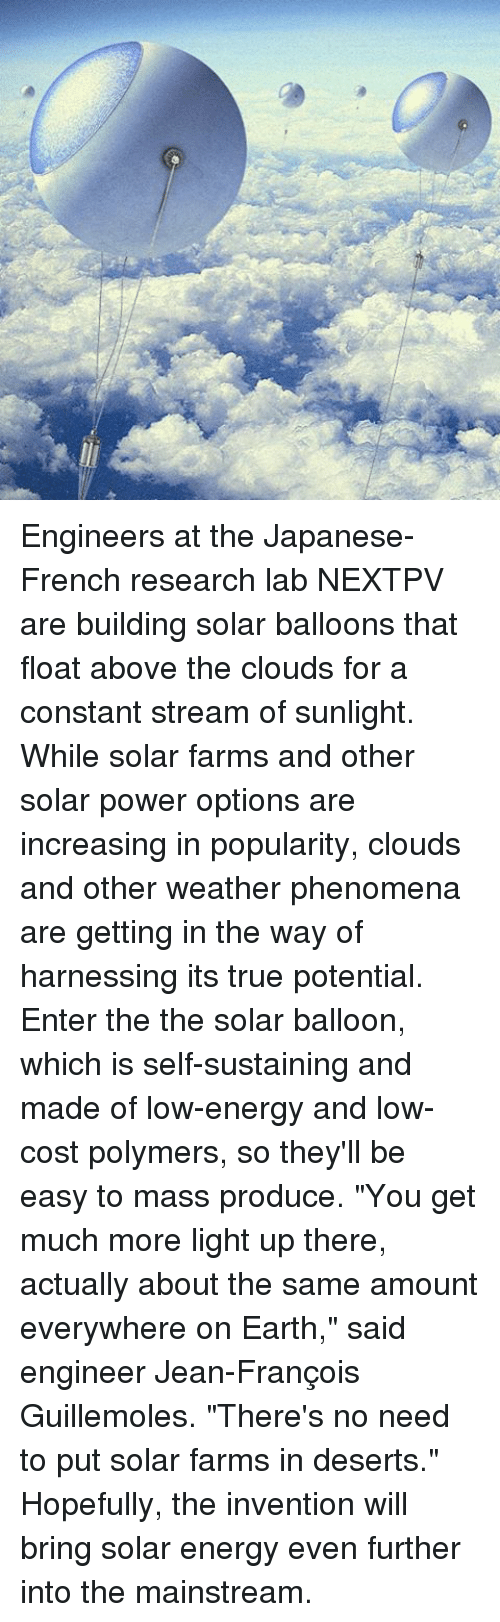 "Memes, 🤖, and Powers: Engineers at the Japanese-French research lab NEXTPV are building solar balloons that float above the clouds for a constant stream of sunlight. While solar farms and other solar power options are increasing in popularity, clouds and other weather phenomena are getting in the way of harnessing its true potential. Enter the the solar balloon, which is self-sustaining and made of low-energy and low-cost polymers, so they'll be easy to mass produce. ""You get much more light up there, actually about the same amount everywhere on Earth,"" said engineer Jean-François Guillemoles. ""There's no need to put solar farms in deserts."" Hopefully, the invention will bring solar energy even further into the mainstream."